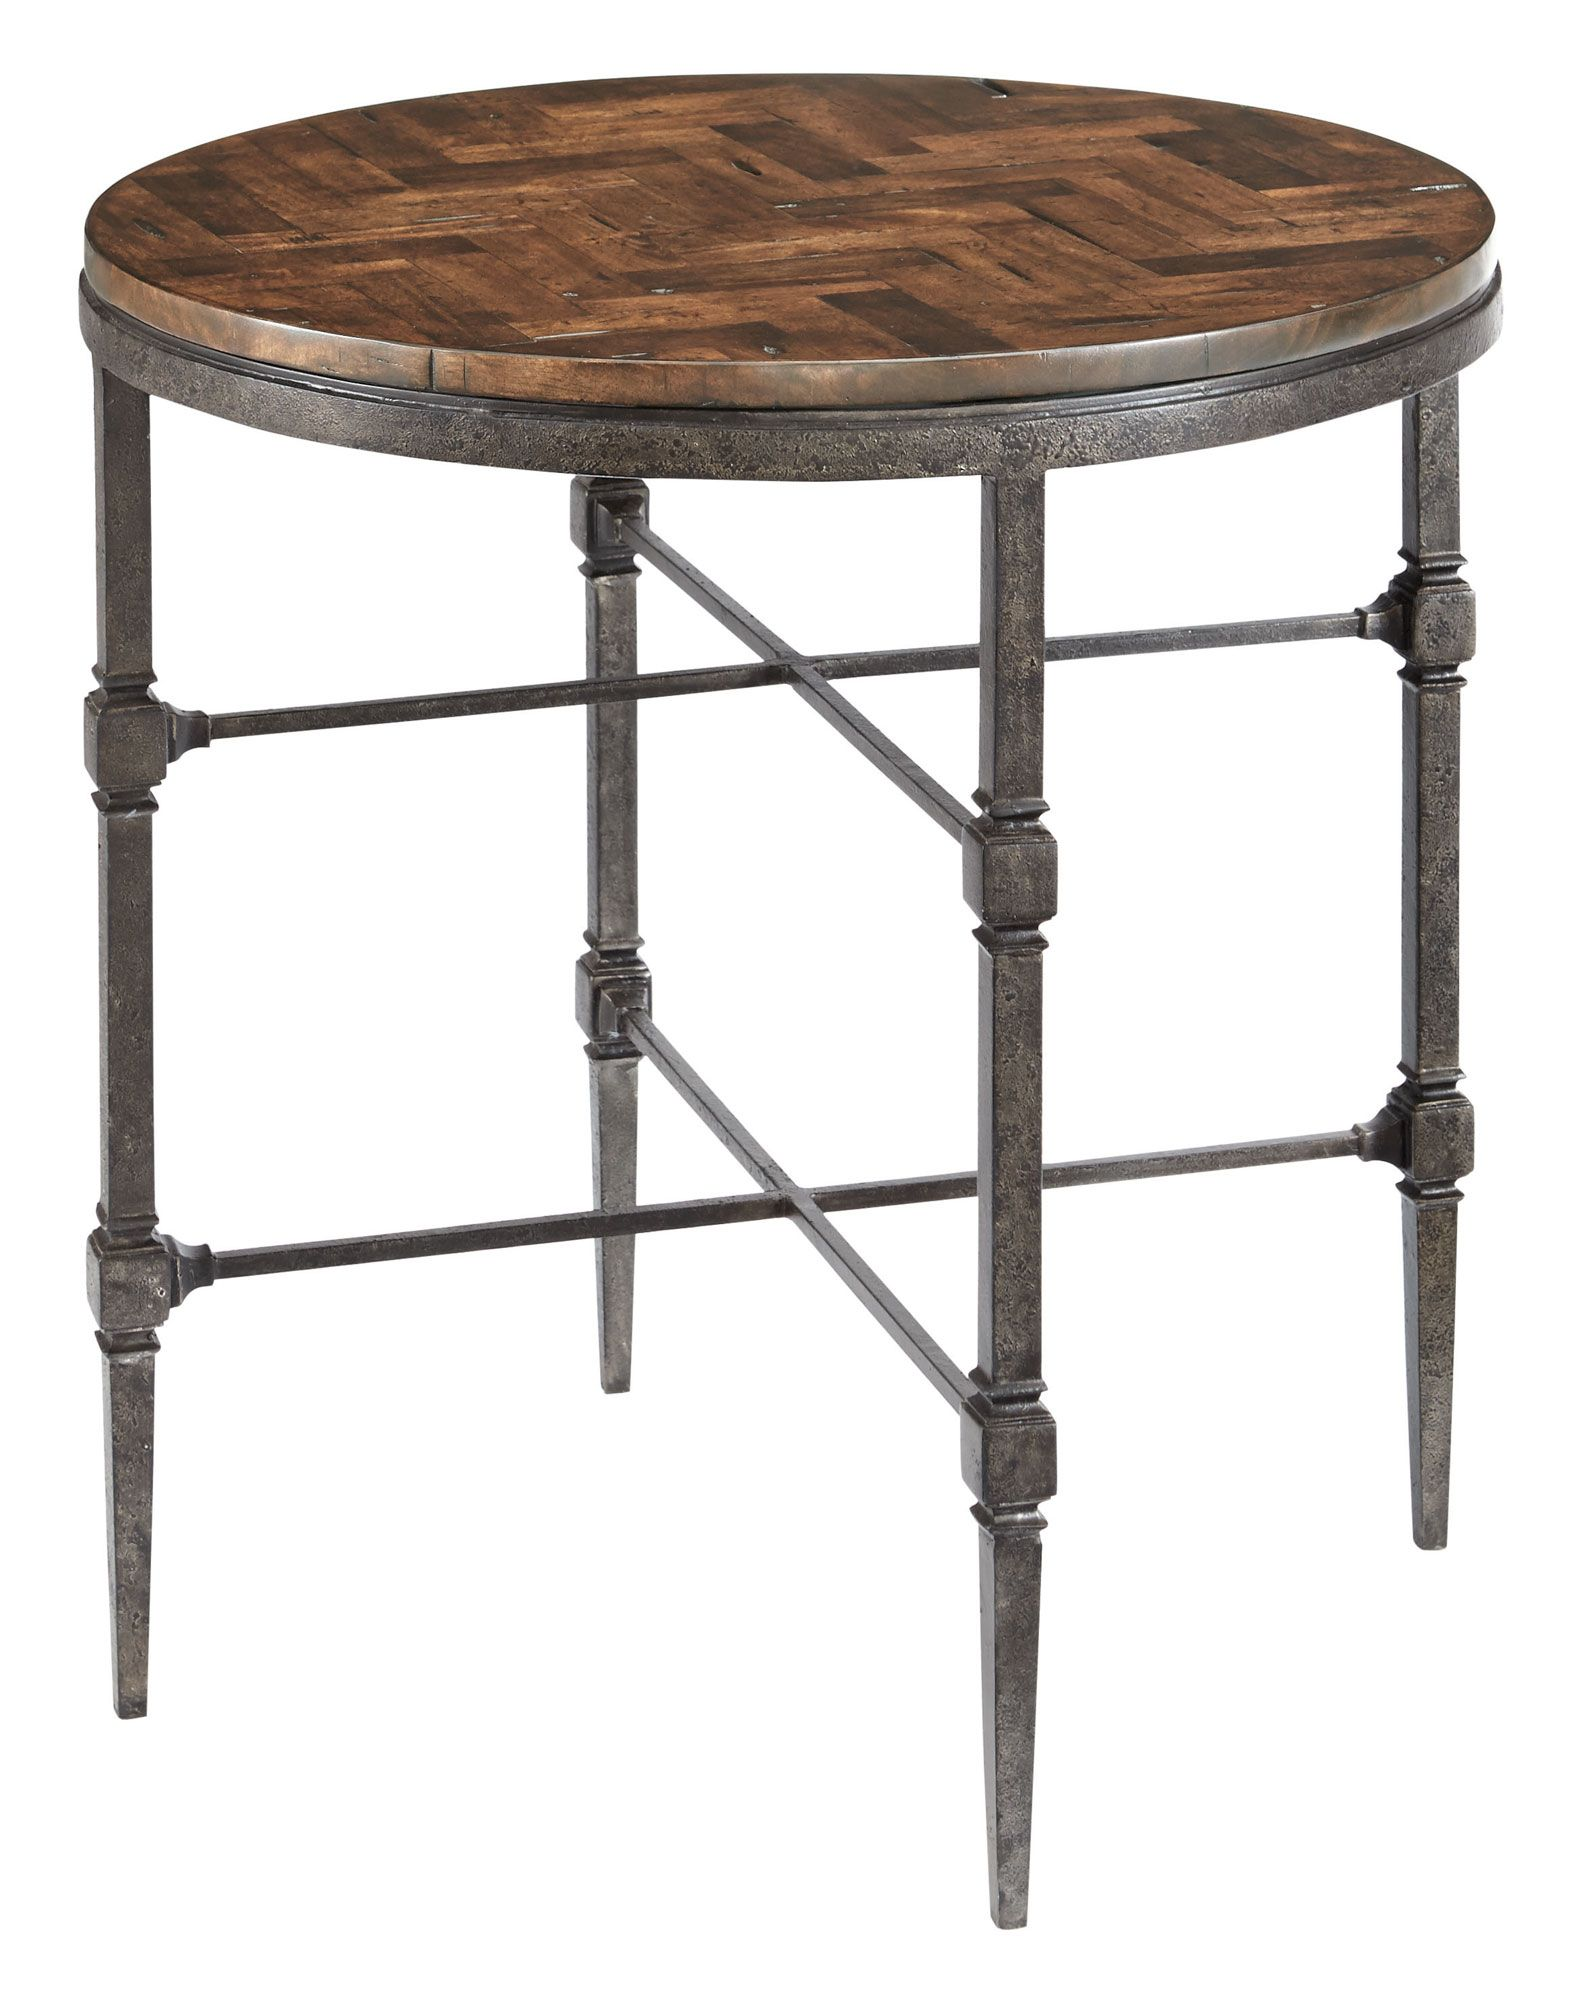 486-121T 486-121 Everett End Table with Wood Top and Metal Base ...